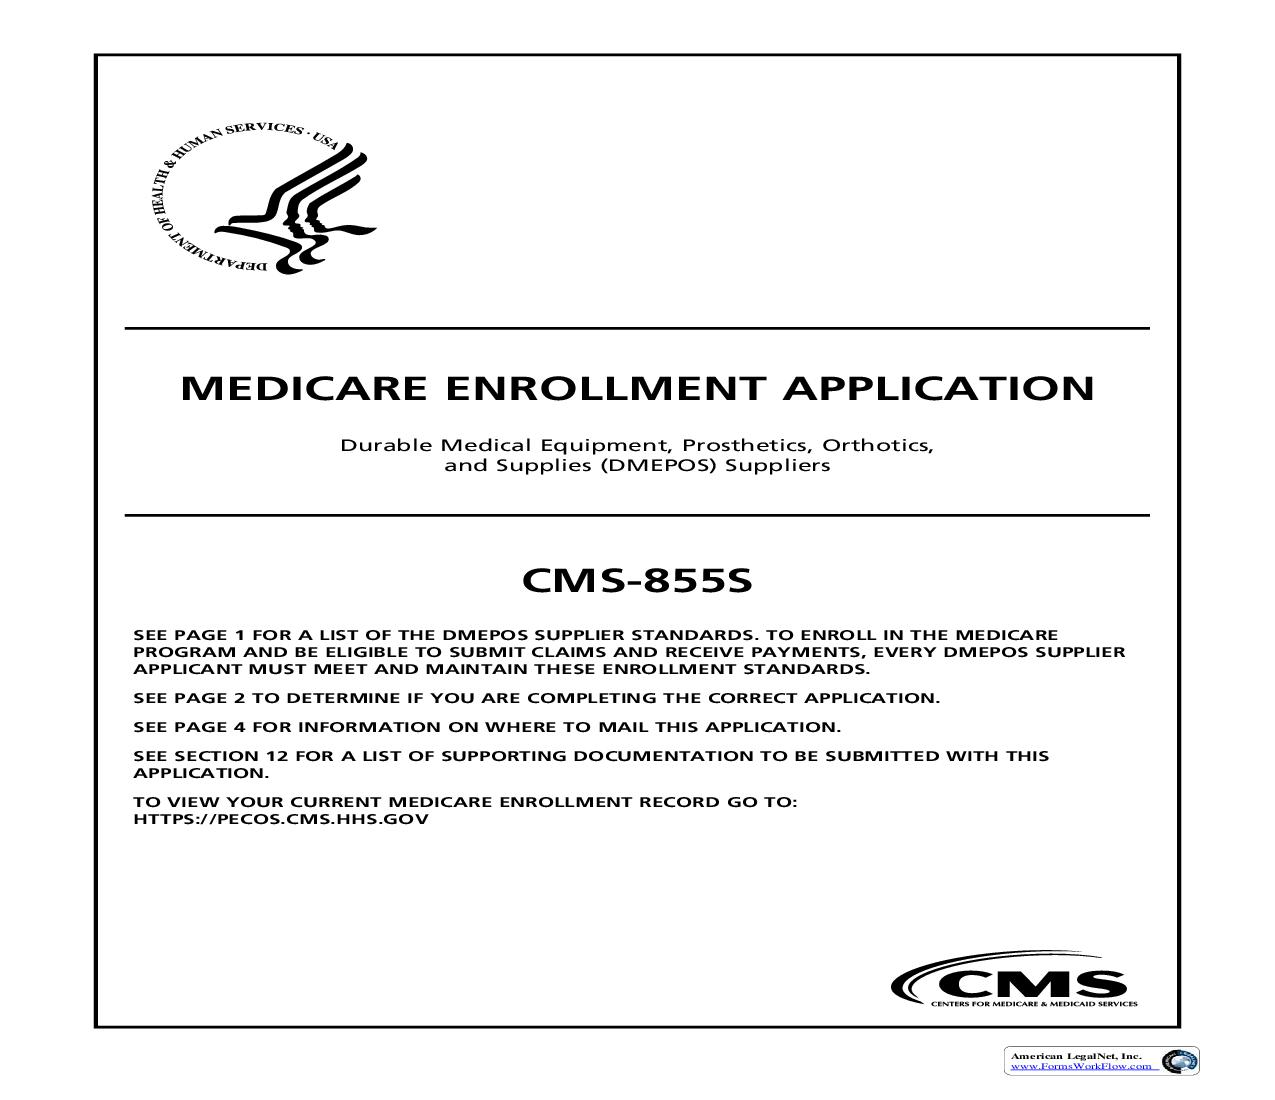 Medicare Enrollment Application Durable Medical Equipment Prosthetics Orthotics And Supplies (DMEPOS) Supplier {CMS-855S} | Pdf Fpdf Doc Docx | Official Federal Forms